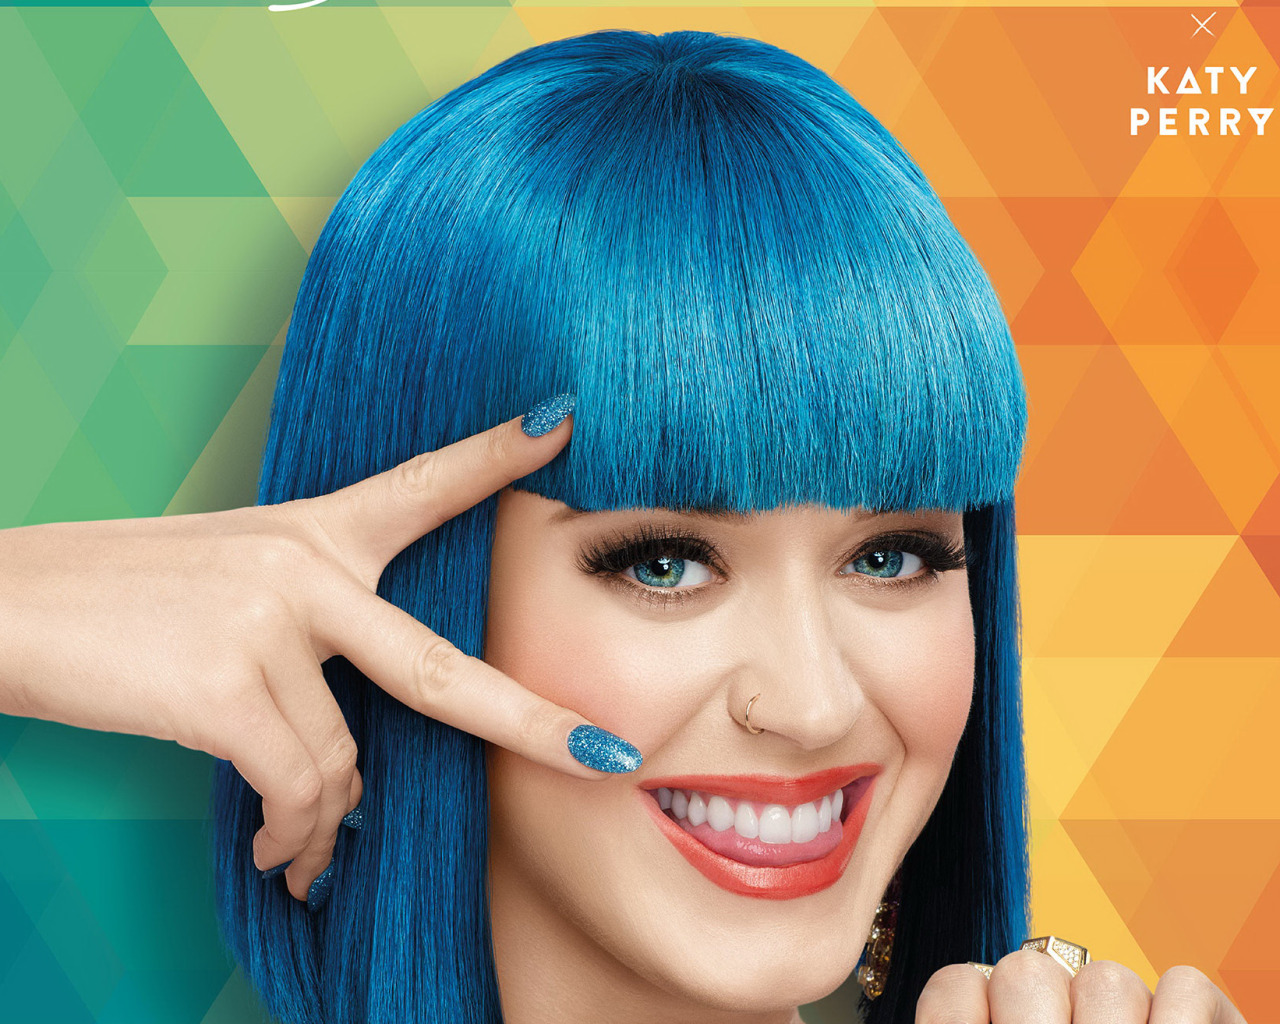 Katy perry i kissed a girl live performance - 1 part 10